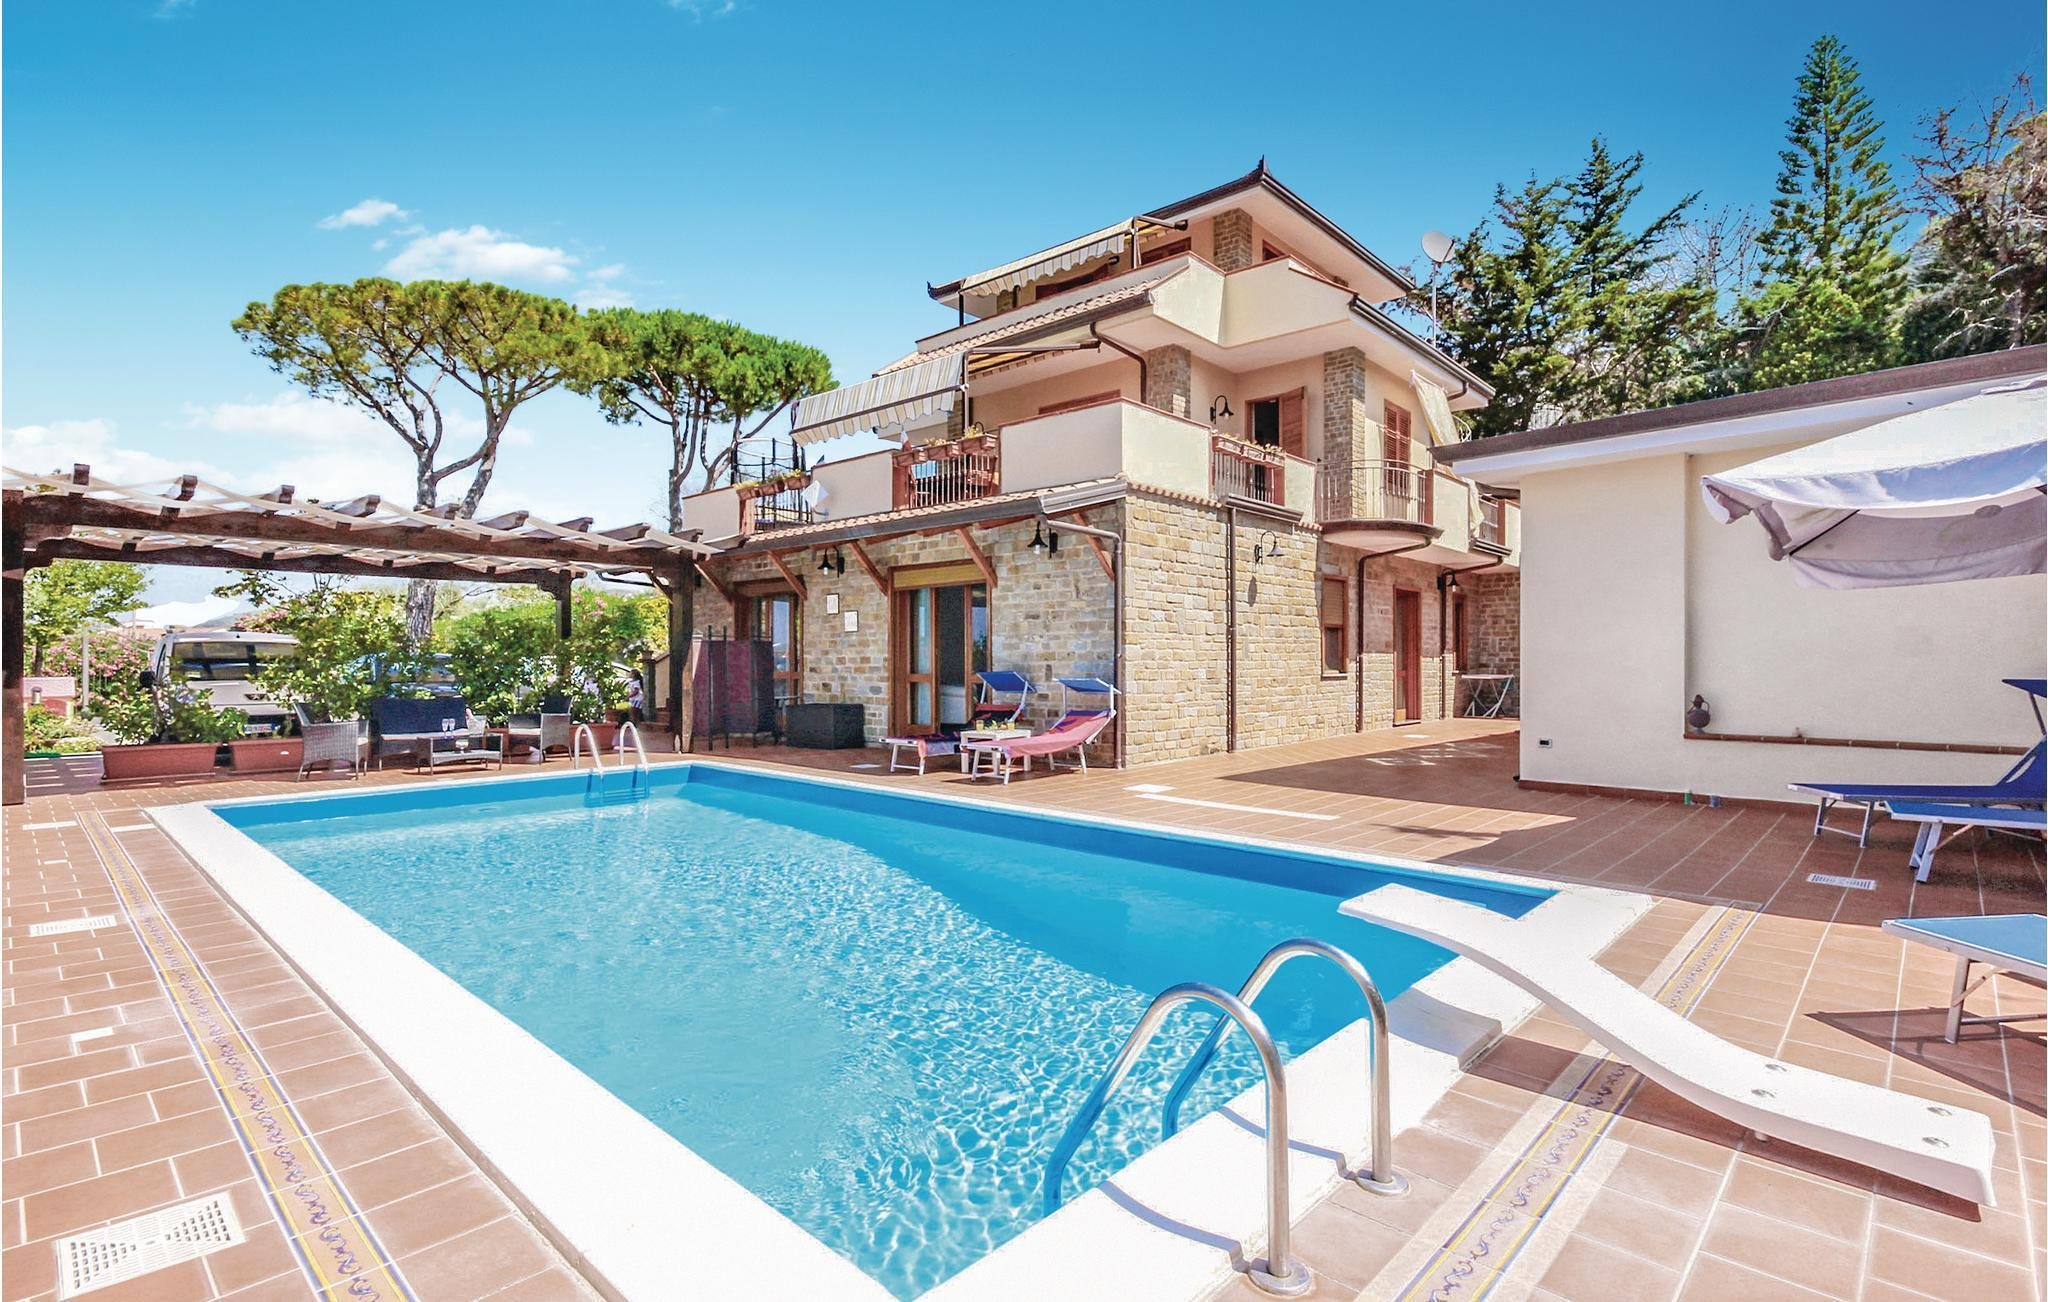 Pool Im Haus Holiday Home/apartment - 8 Persons - Via S. Andrea Snc - S. Maria Di Castellabate - 84048 - Castellabate -sa- - 140-ikc457 - Feline Holidays